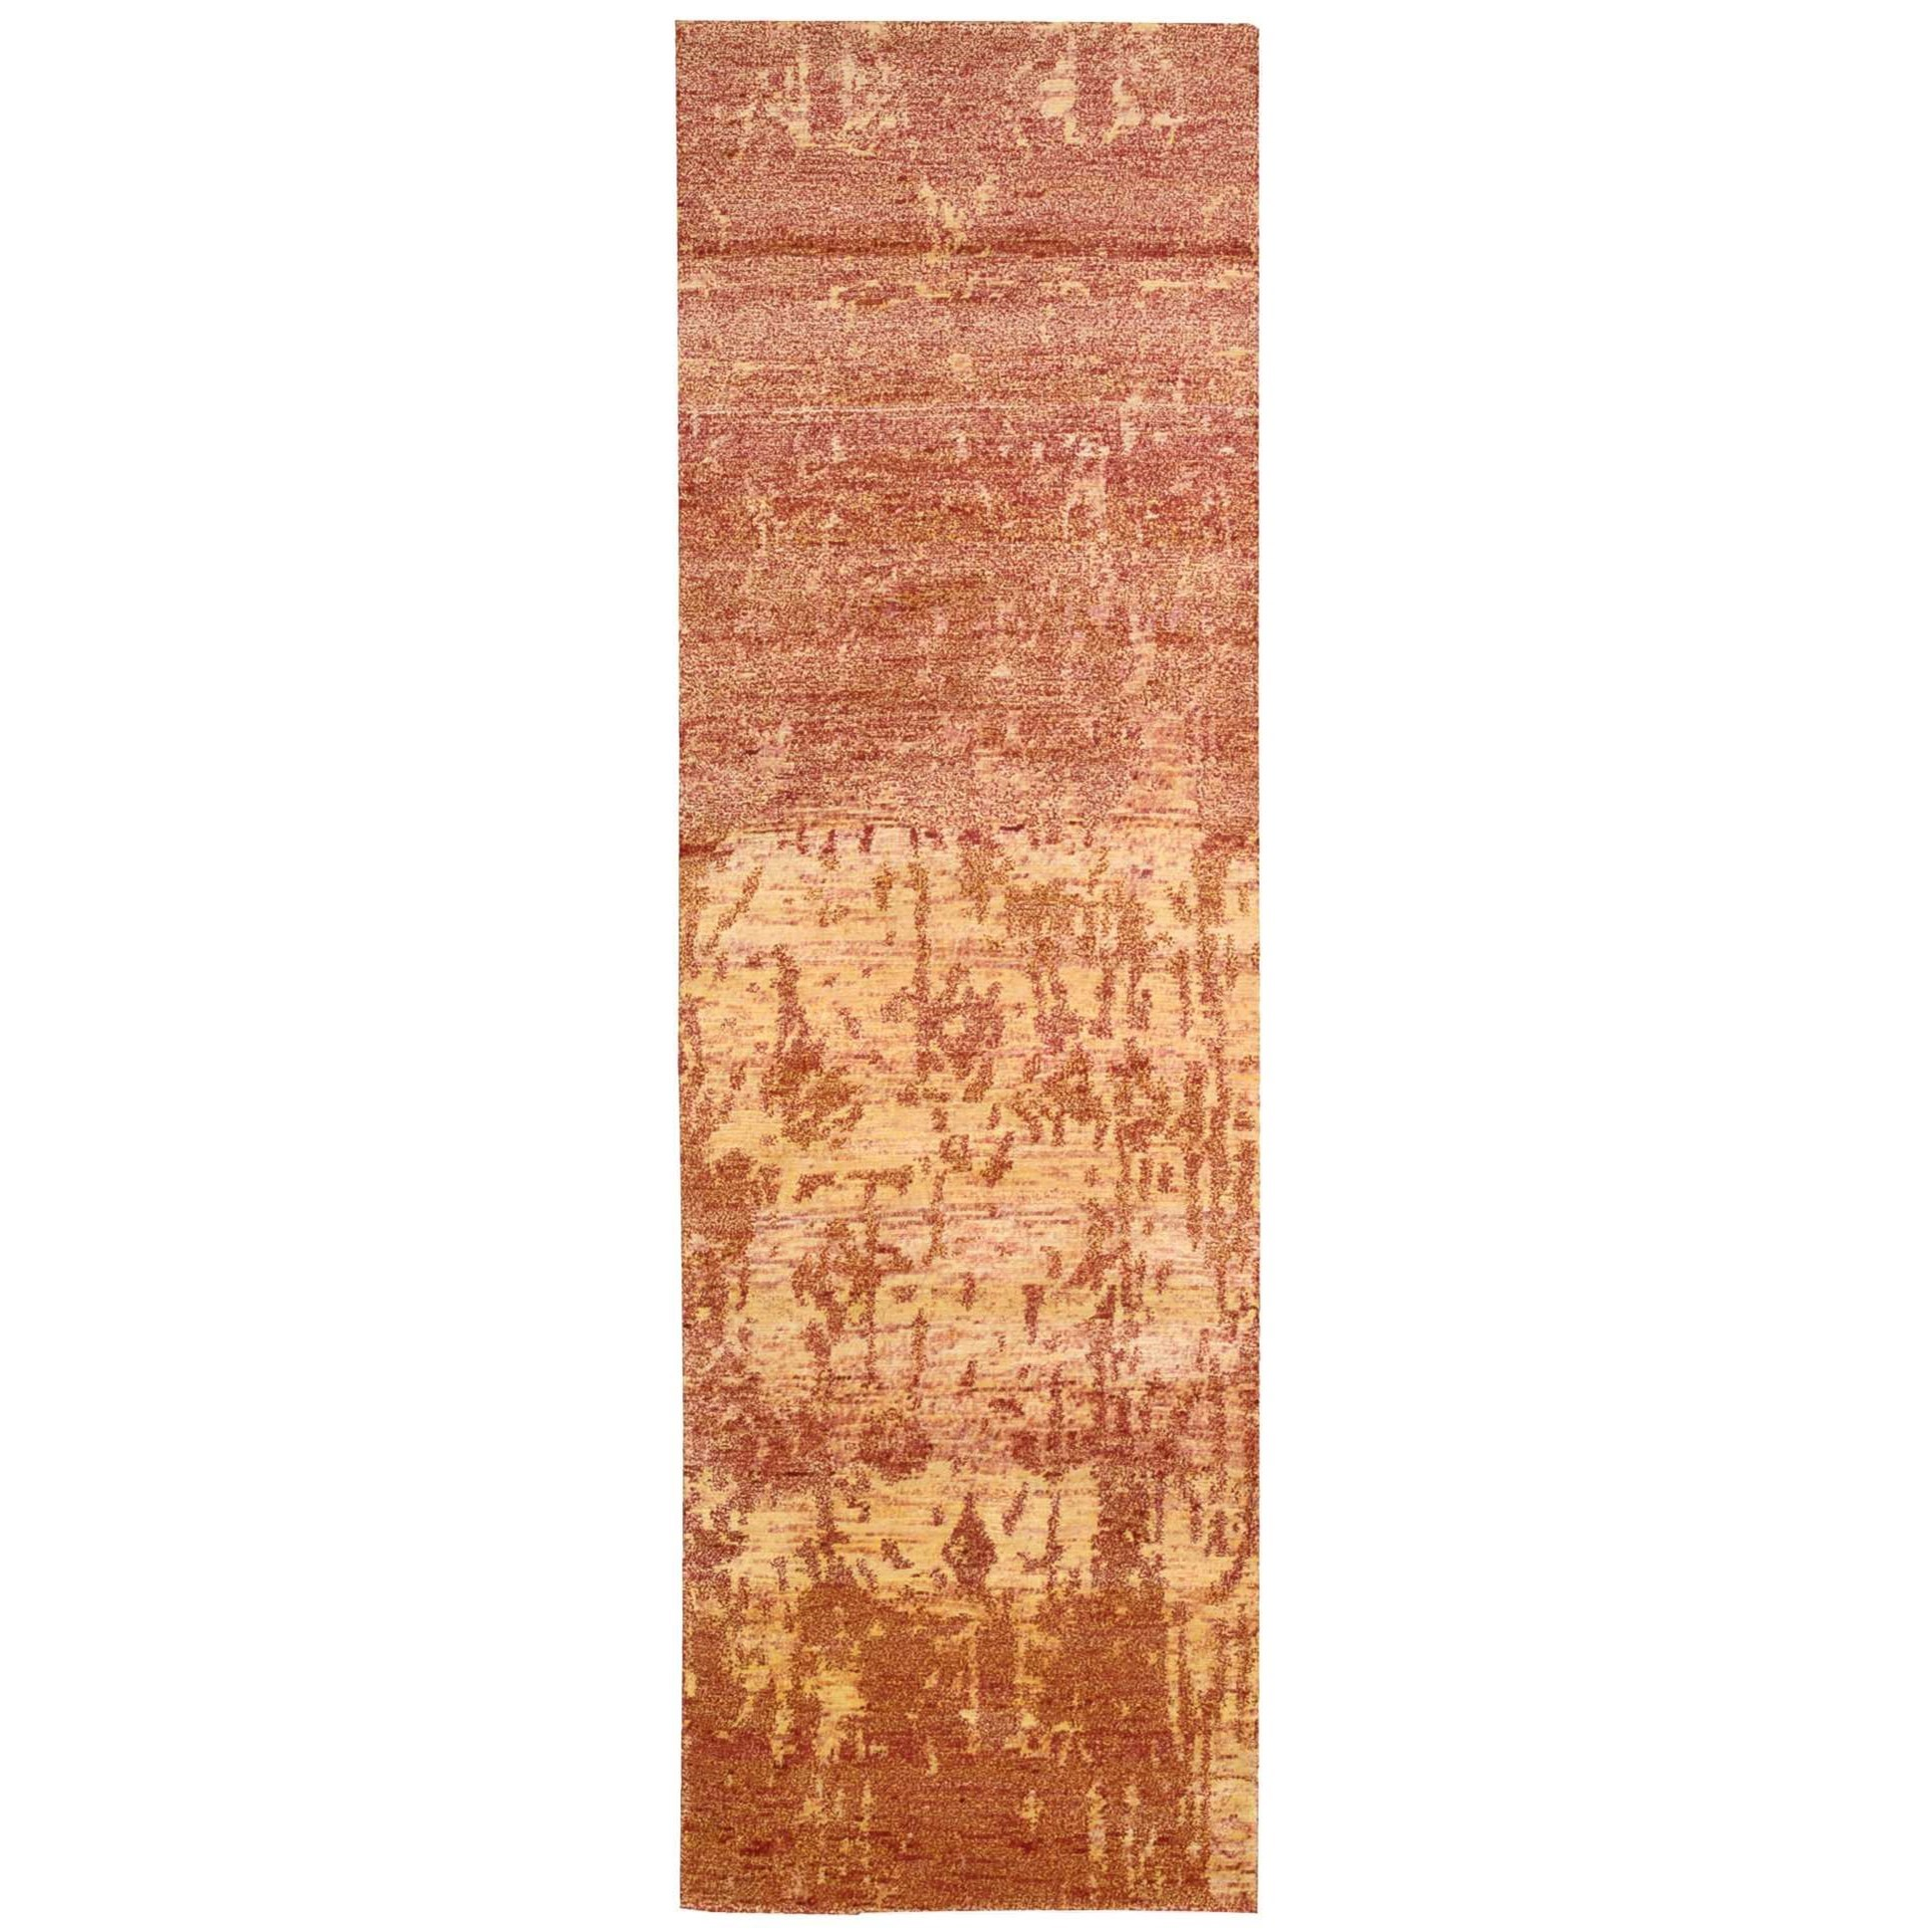 "Nourison Silk Shadows 2'3"" x 8' Flame Runner Rug - Item Number: SHA10 FLAME 23X8"